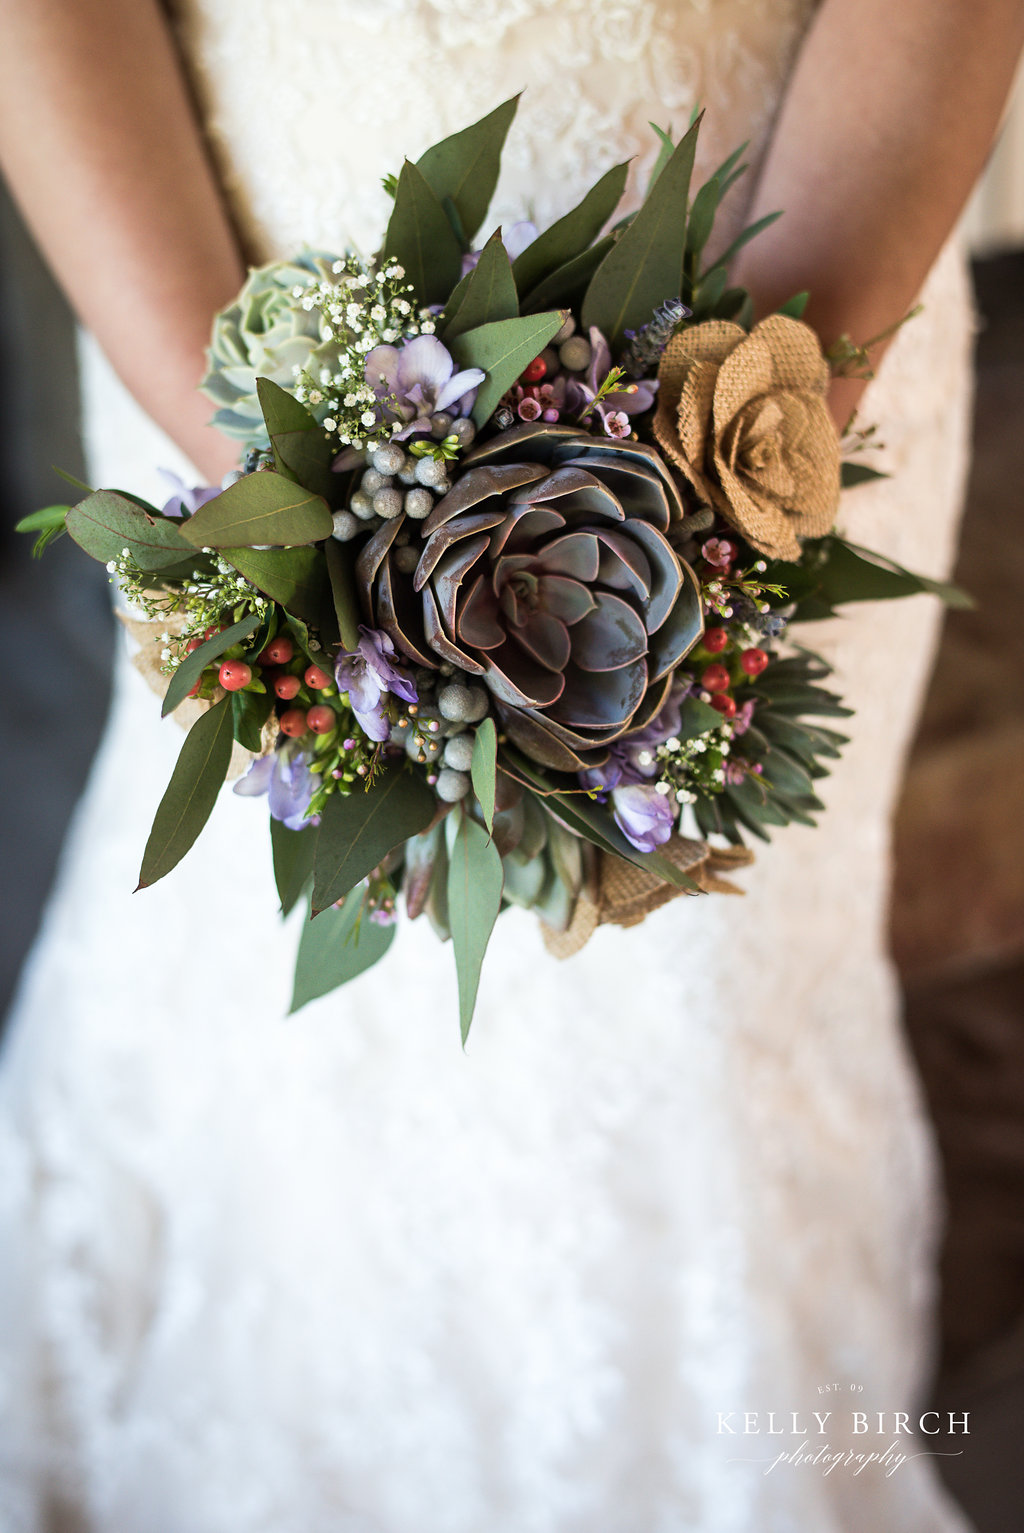 Succulents in a bridal bouquet for your wedding